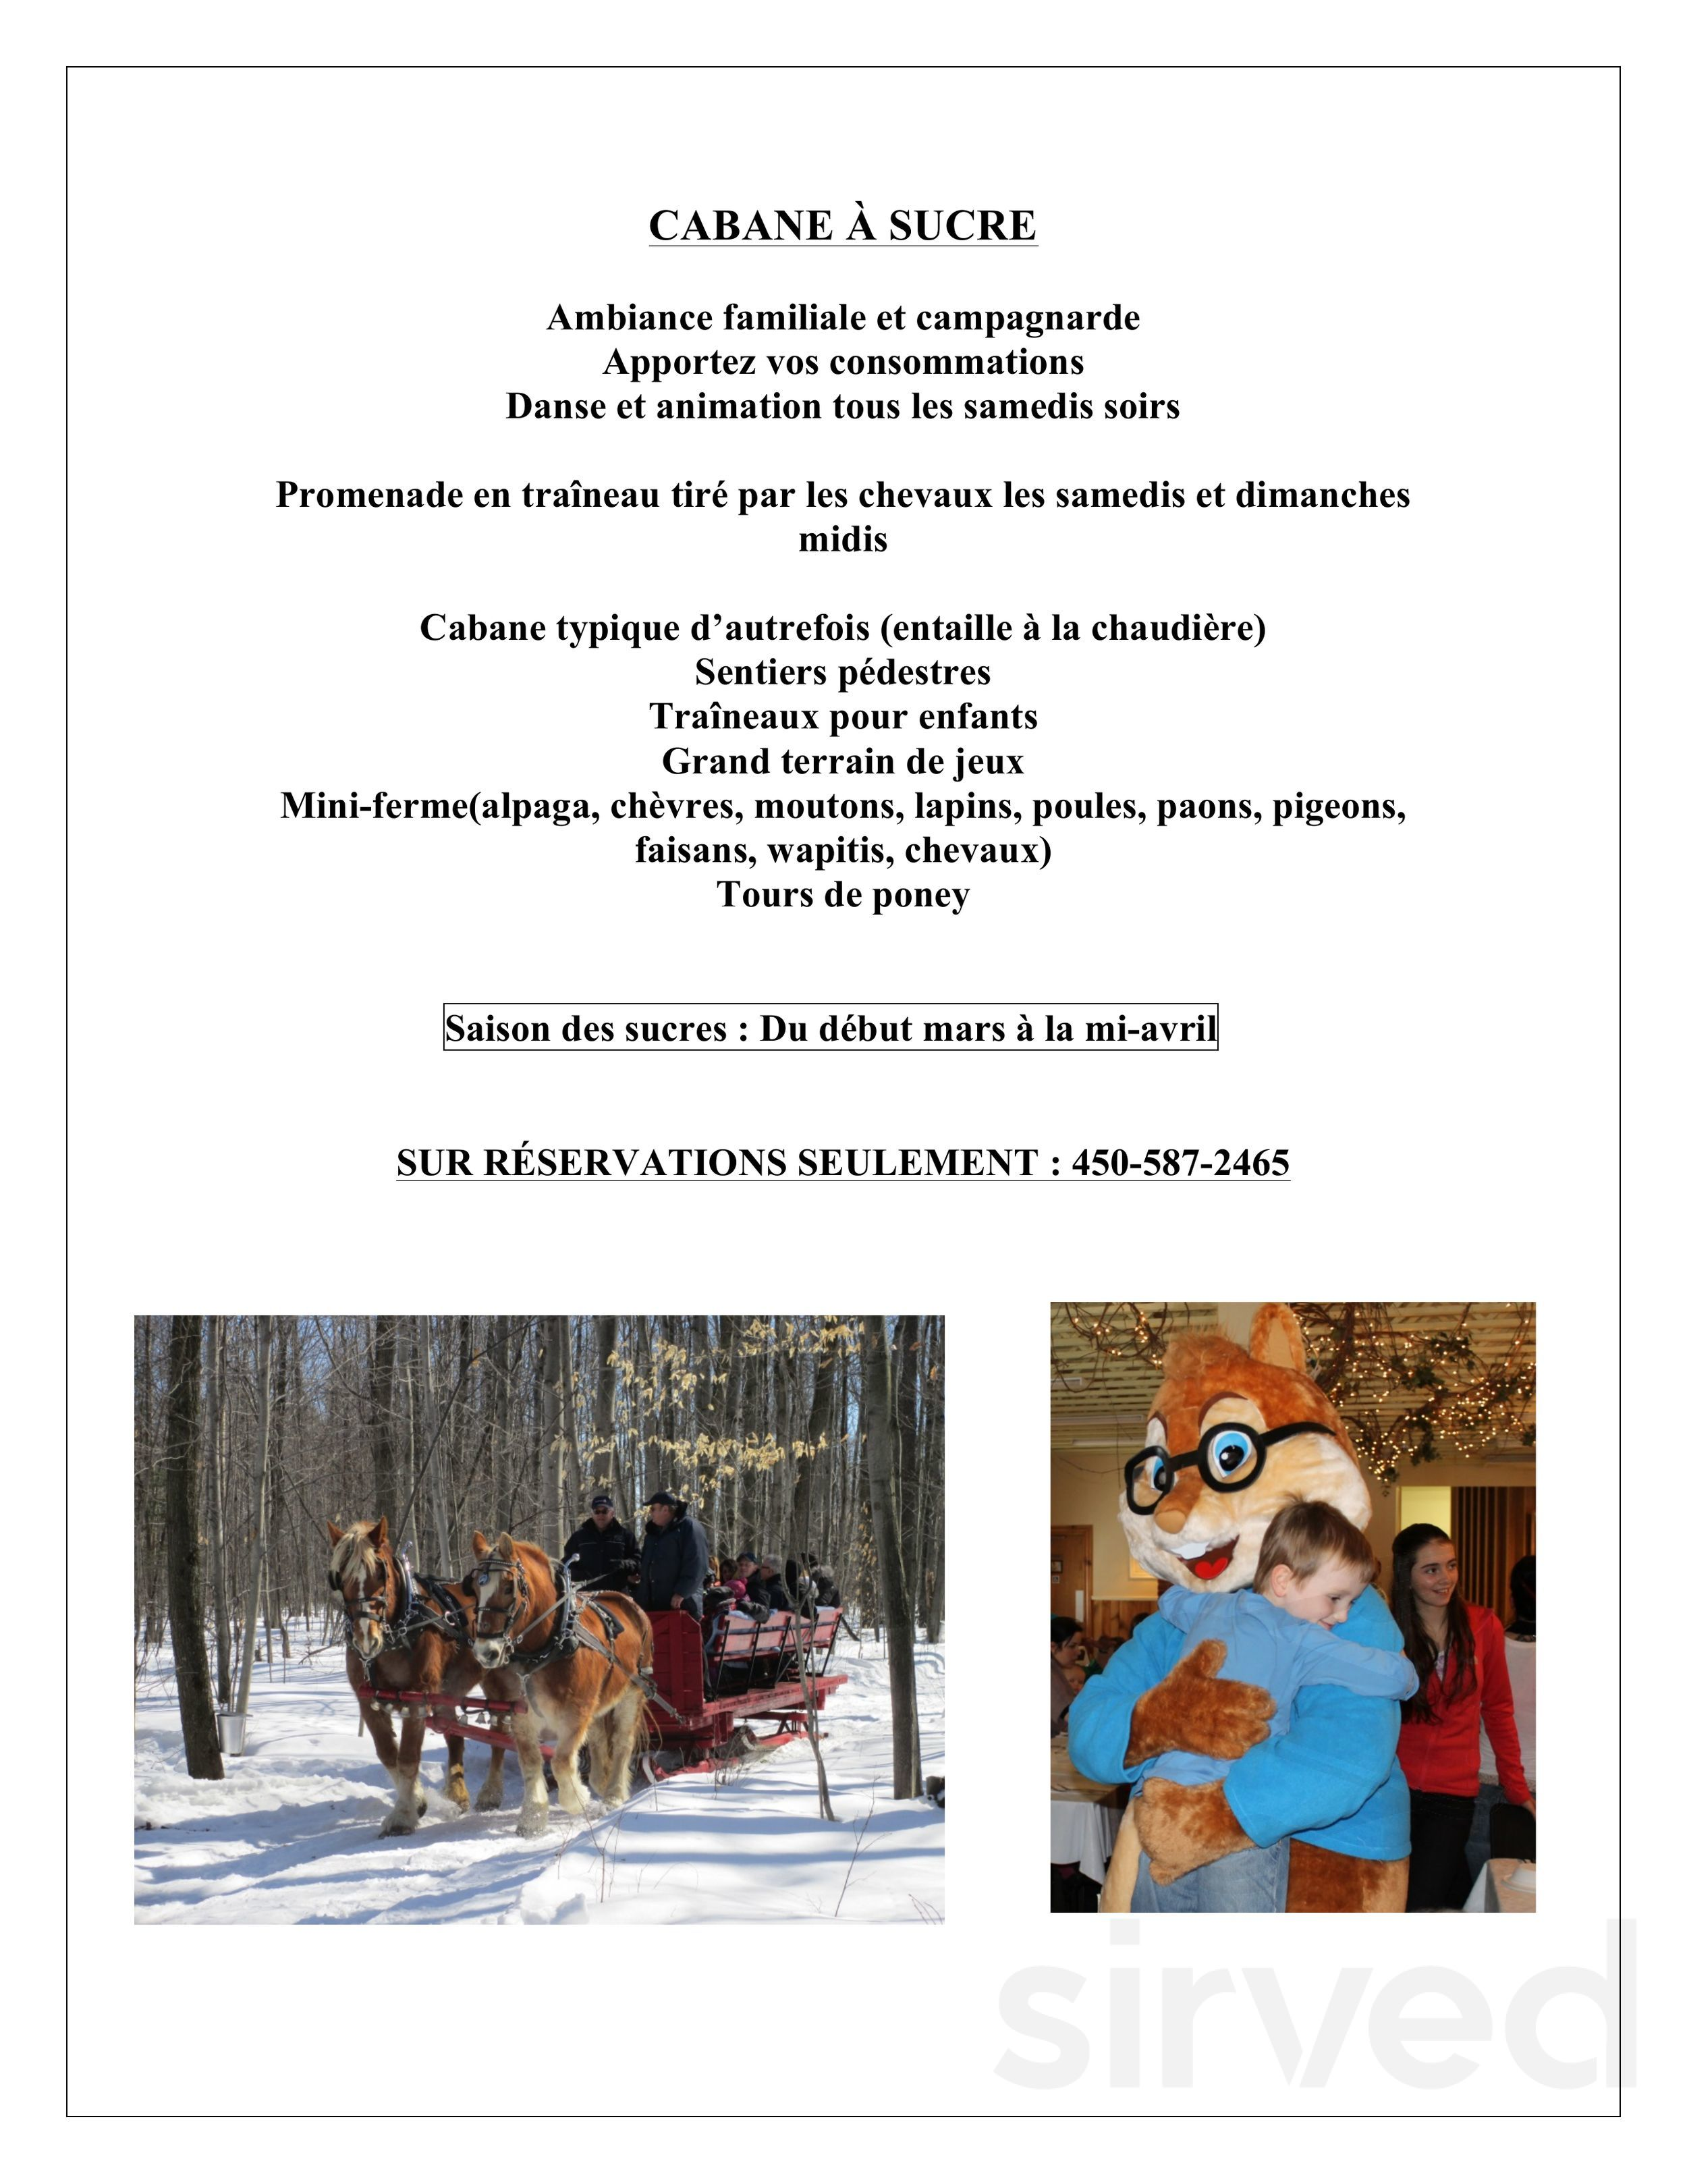 Les Grands Buffets Reservation Menu For Buffet Michel In Contrecoeur Quebec Canada